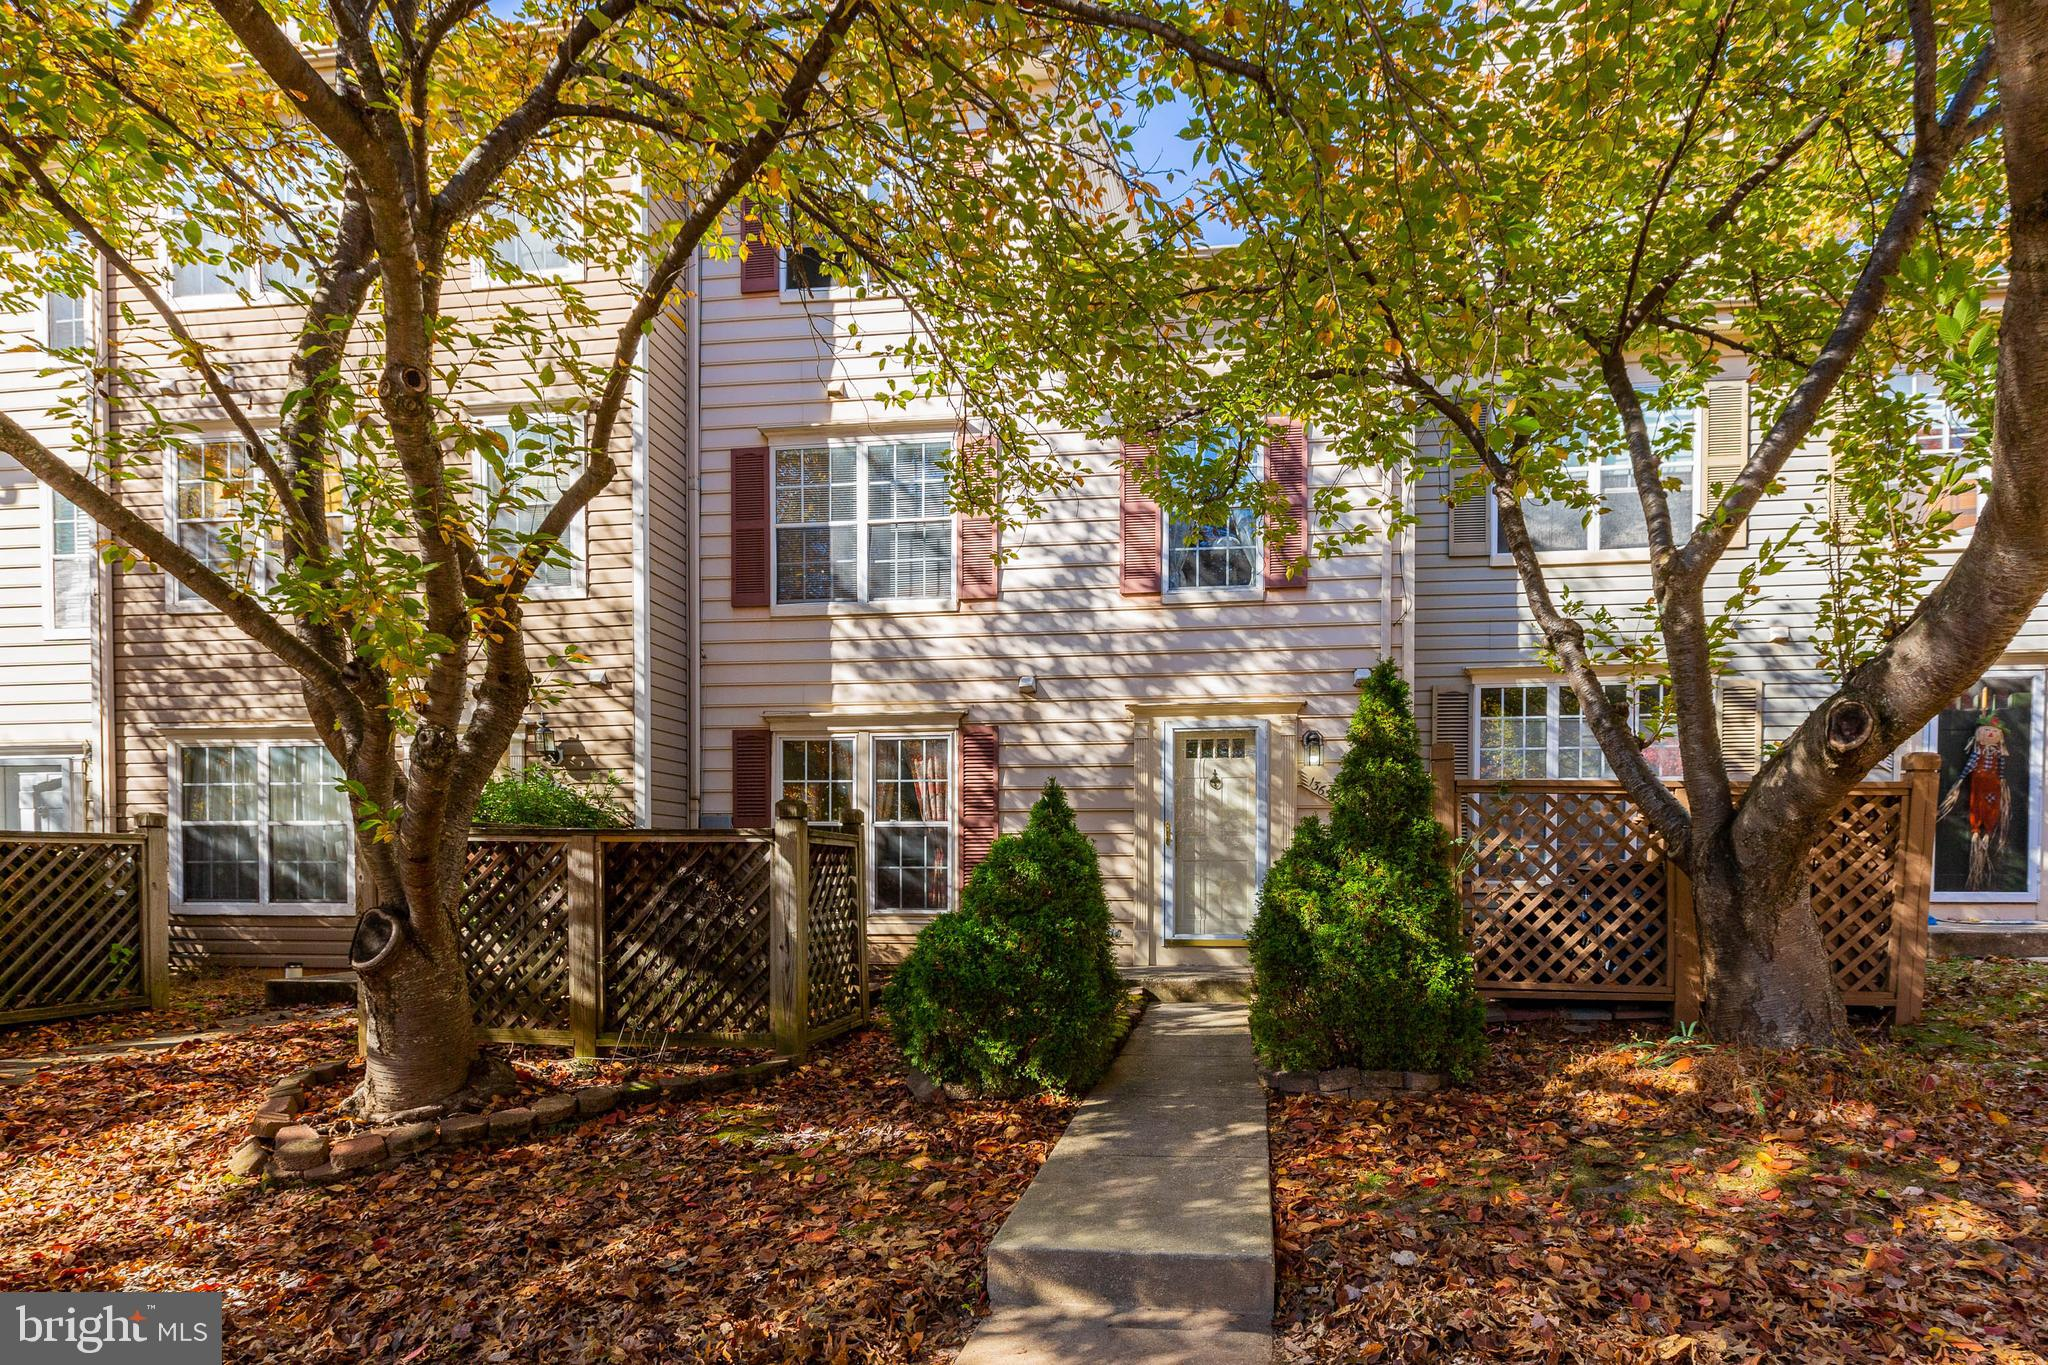 Great 3 level townhouse with lots of amenities including tennis courts and community pool. Features new carpet, new washer and dryer. Cozy fireplace, close to shops, restaurants, public transportation and library. Plenty of unreserved parking.